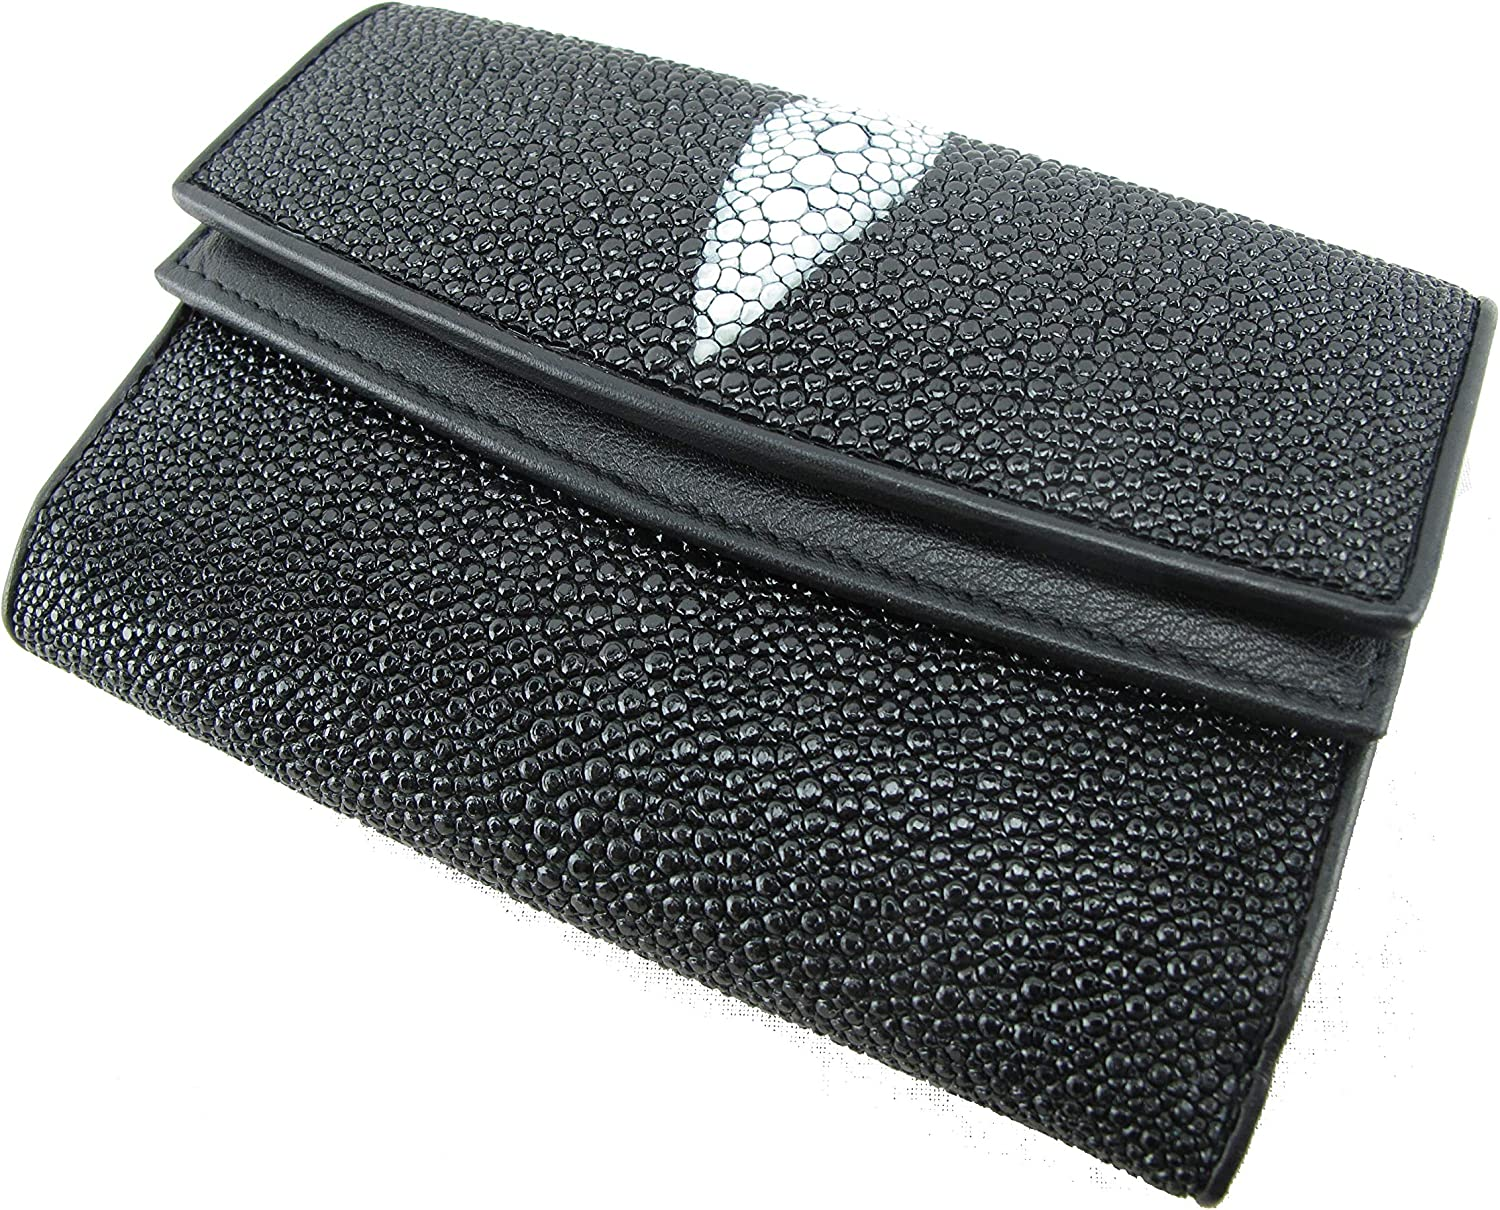 PELGIO Genuine Stingray Skin Women's Purse Clutch Medium Super Clearance SALE! Limited time! special price Wallet